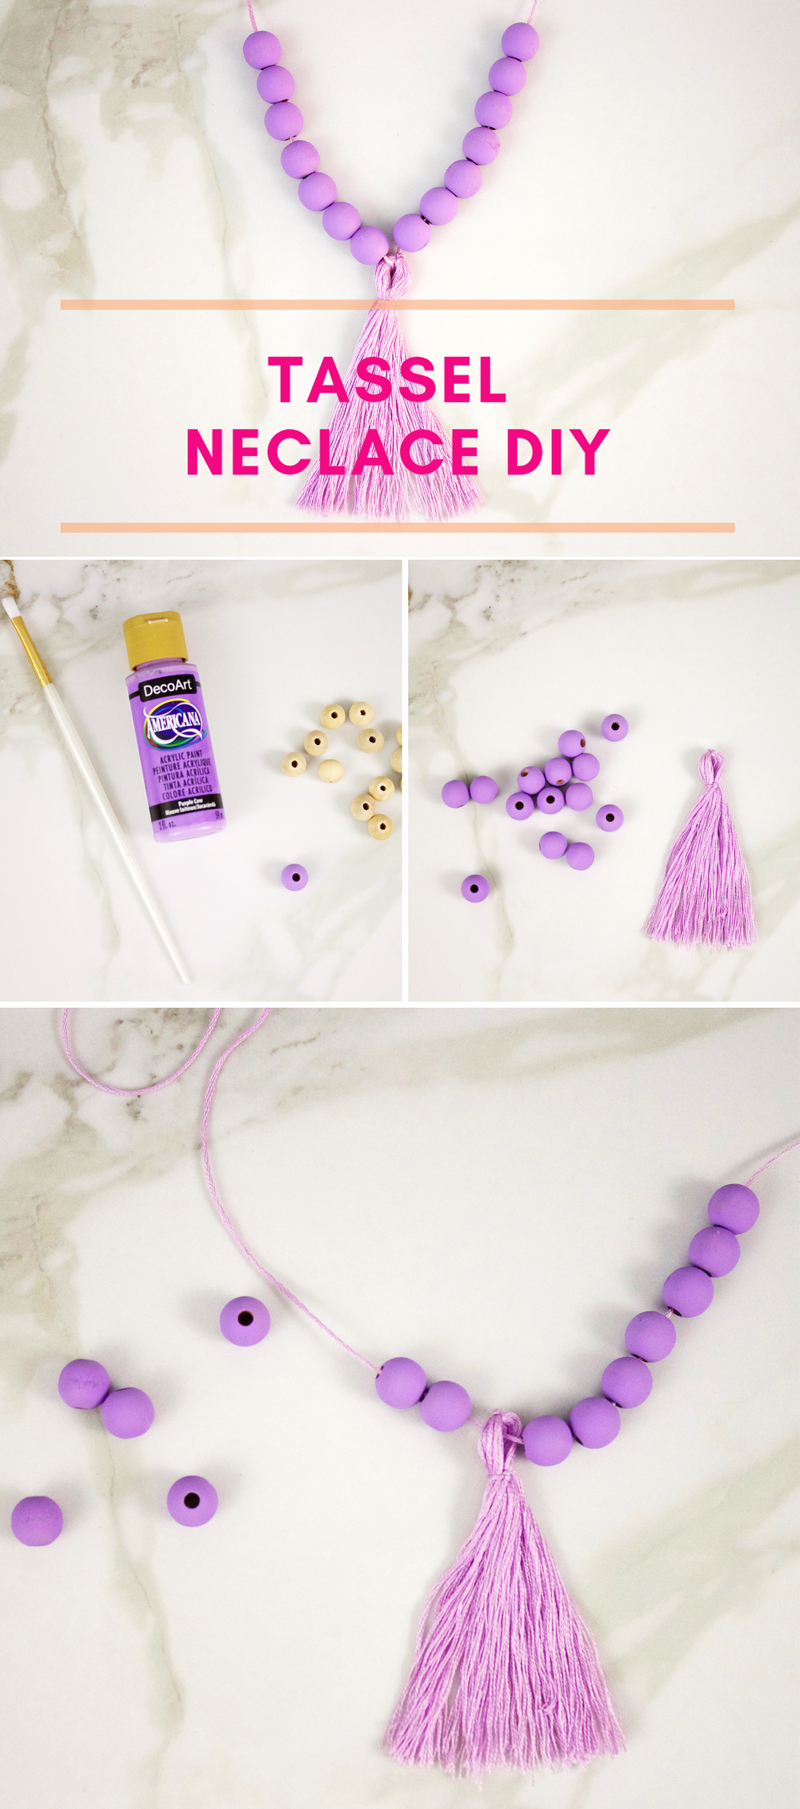 How to make a Tassel Necklace DIY